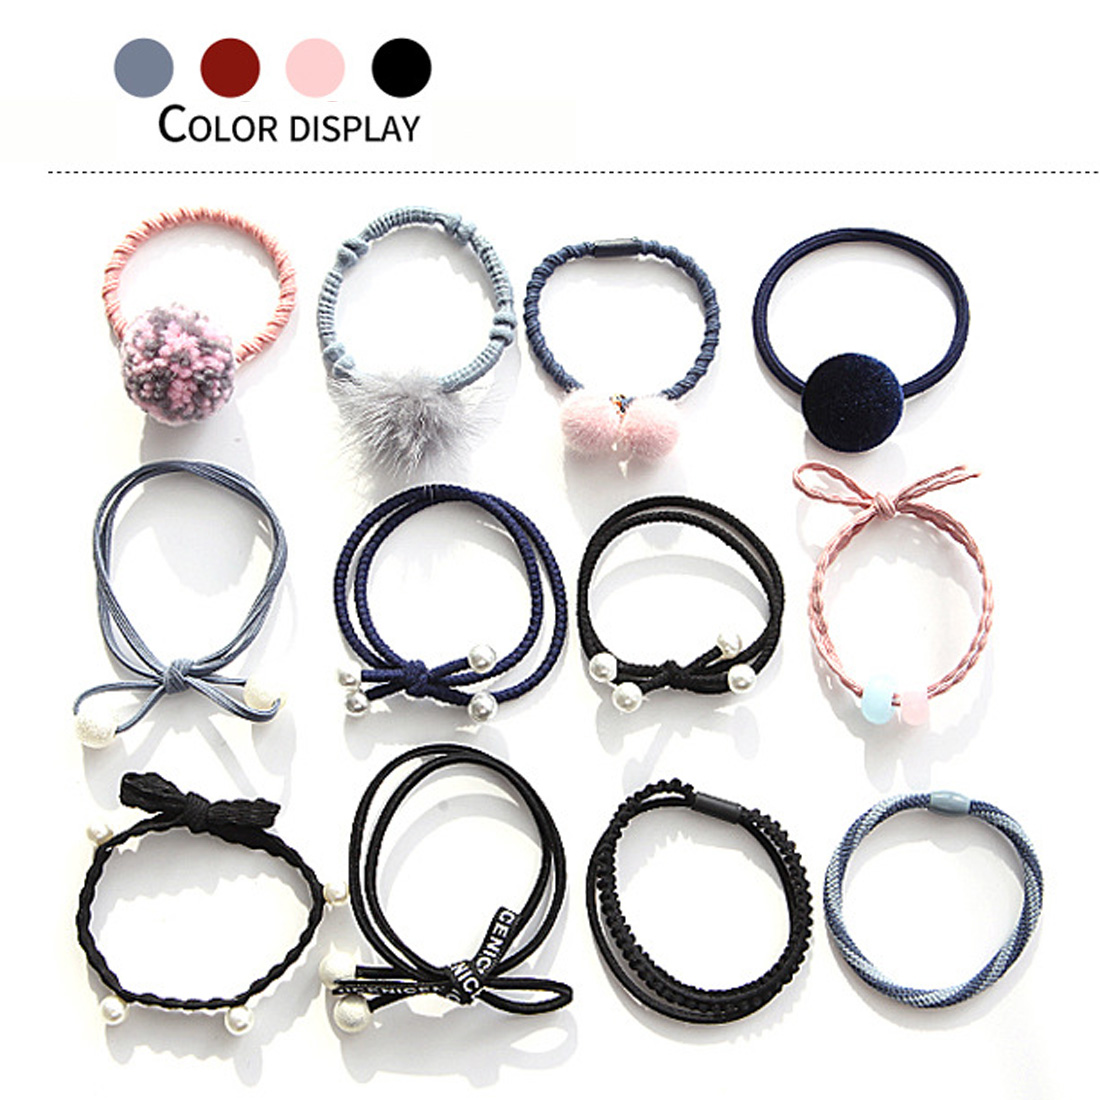 12pcs/set Girls Hairband Hairball Pearl Bow Elastic Rubber Bands Hair Ropes Ponytail Holder Tie Gum Hair Accessories new 10pcs women lady hair band velvet elastic ponytail tie bow rubber bobbles lovely